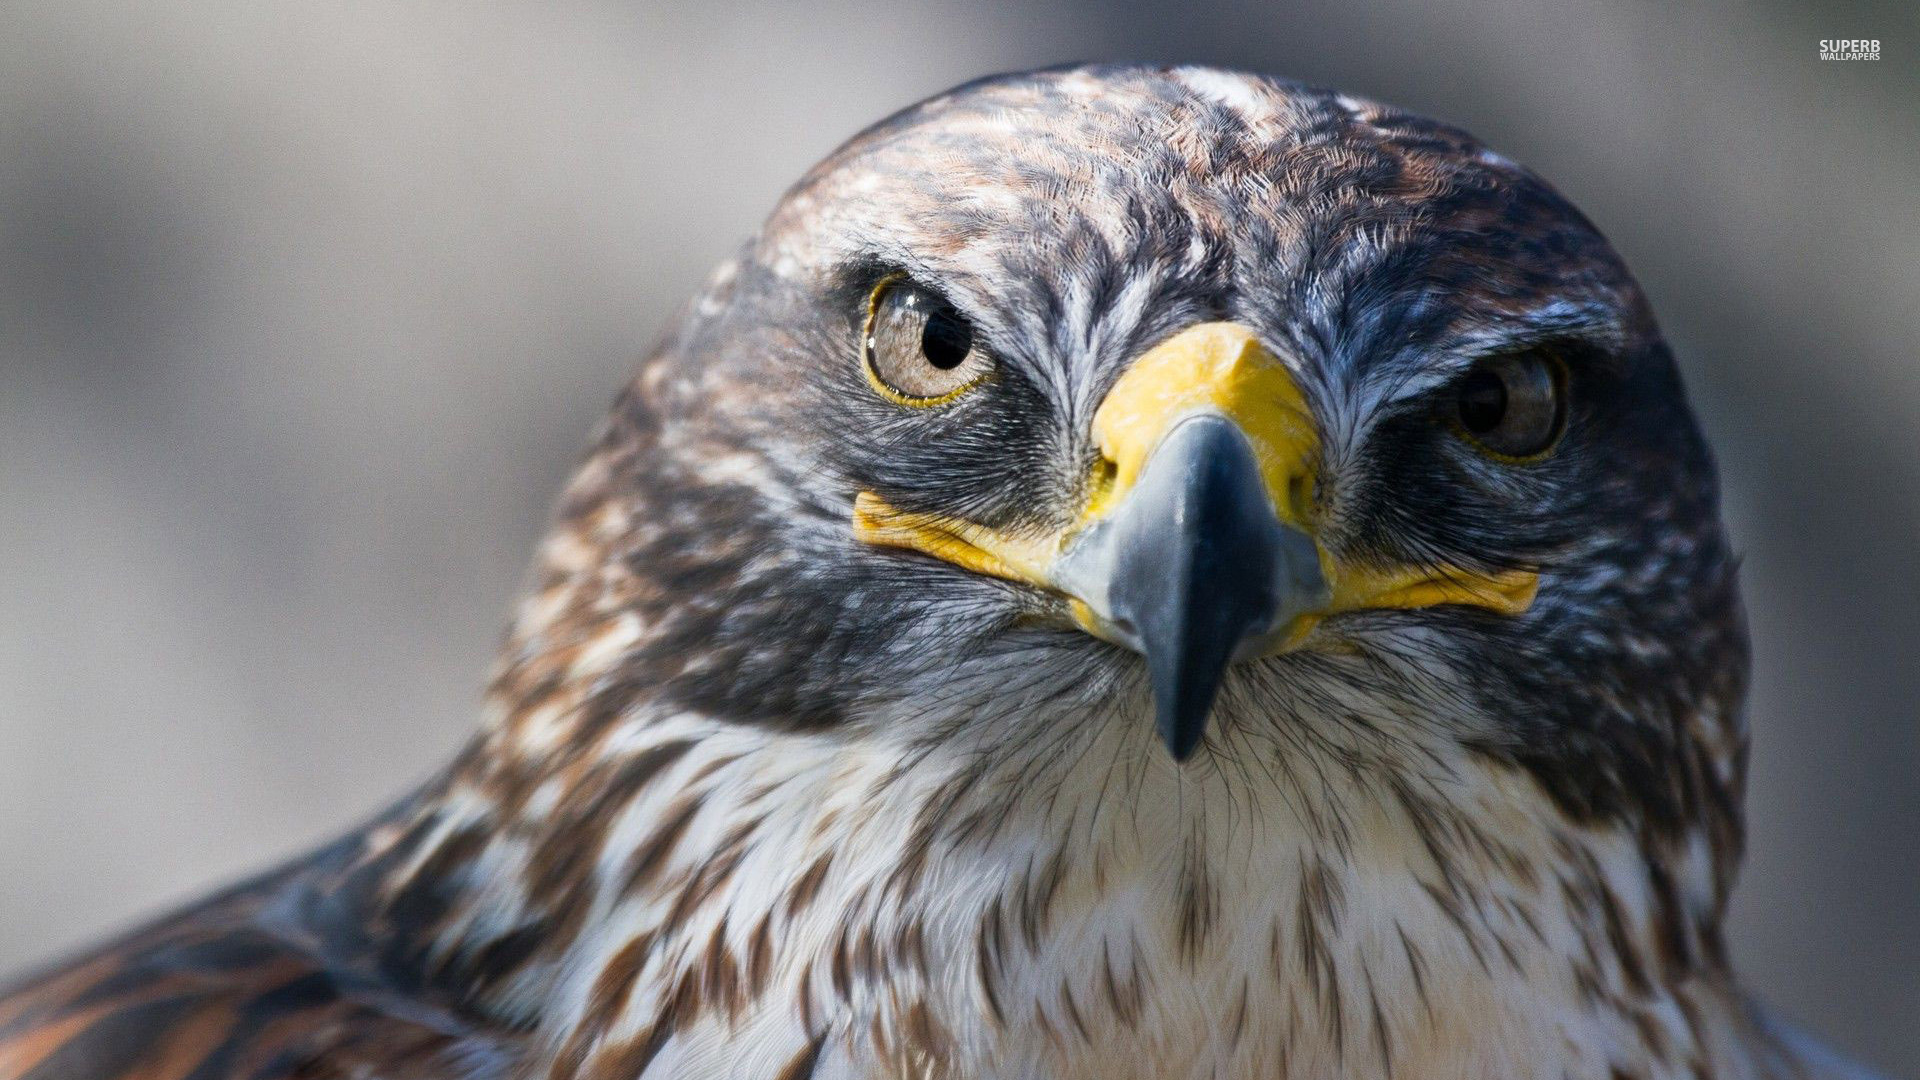 ... Falcon wallpaper - Animal wallpapers - #28993 ...